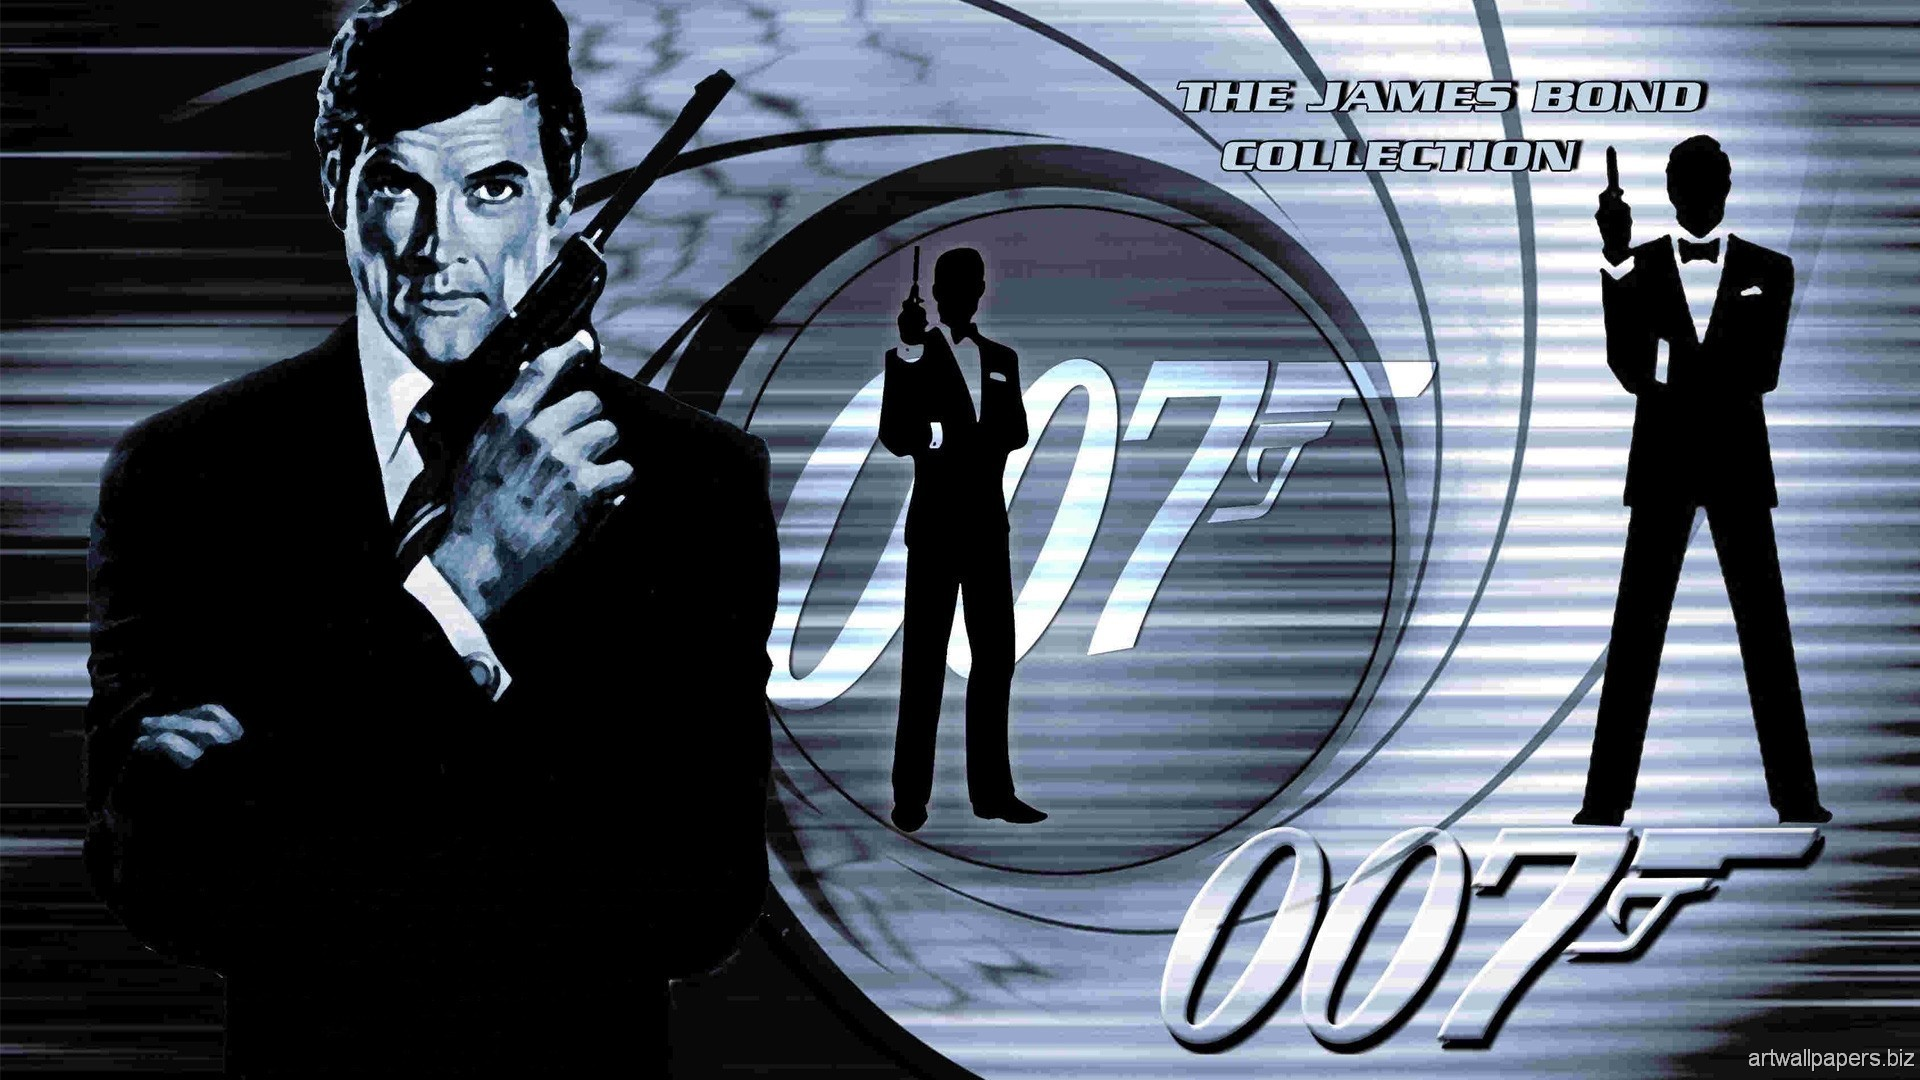 007 james bond wallpaper 7331 PC en 1920x1080